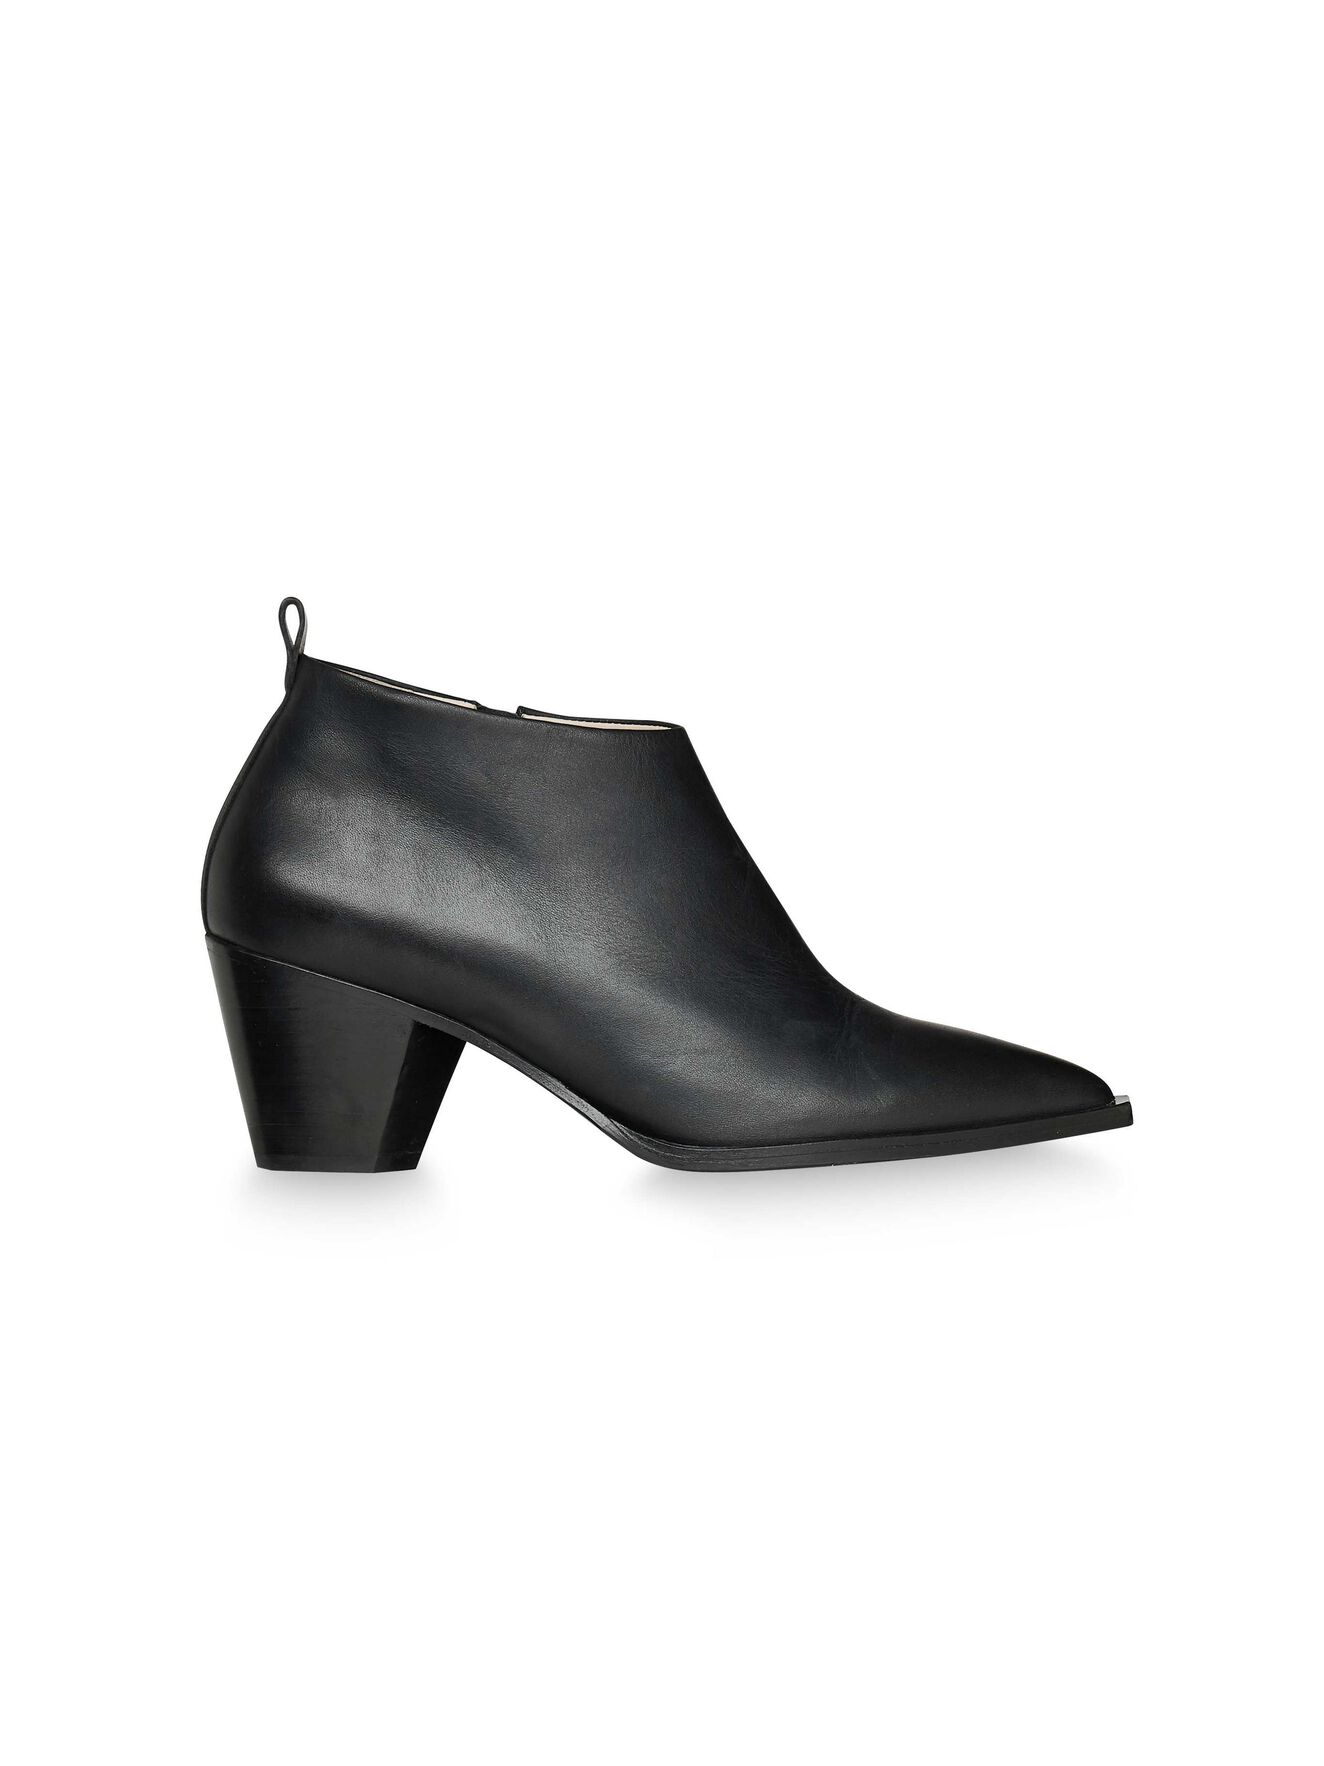 Rorbye Boot in Black from Tiger of Sweden